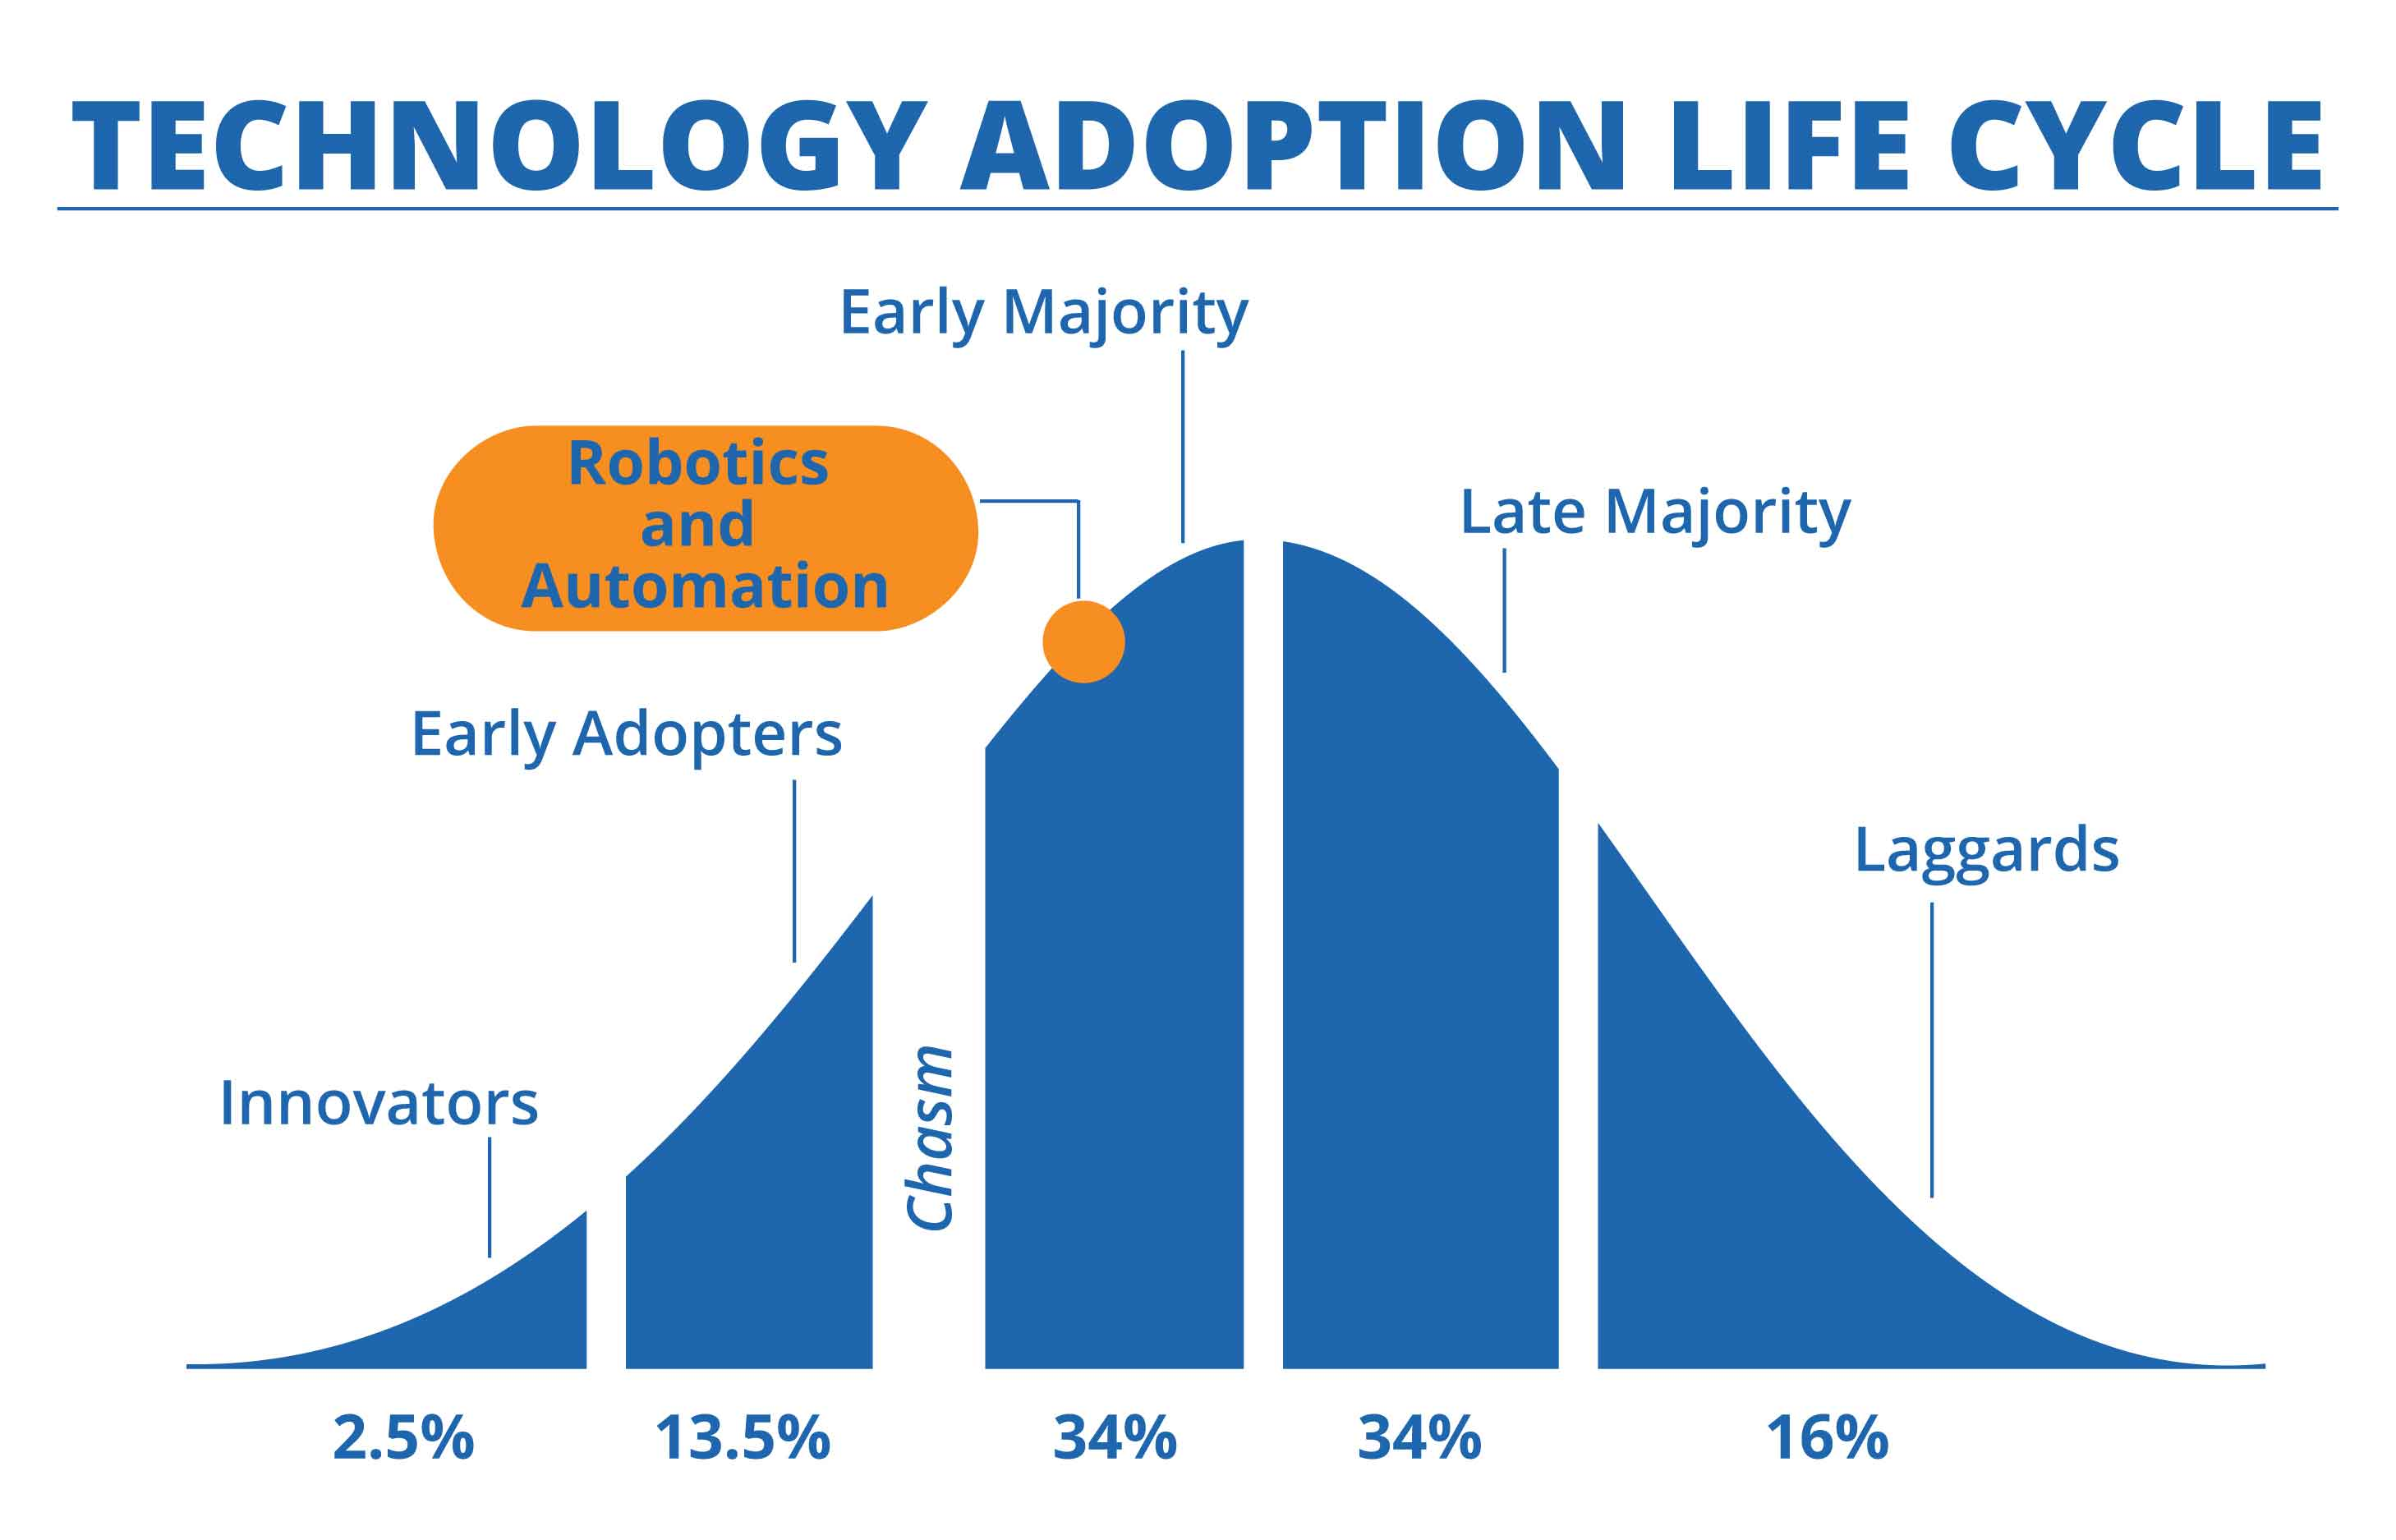 Technology-Adoption-Life-Cycle-Robotics-and-Automation